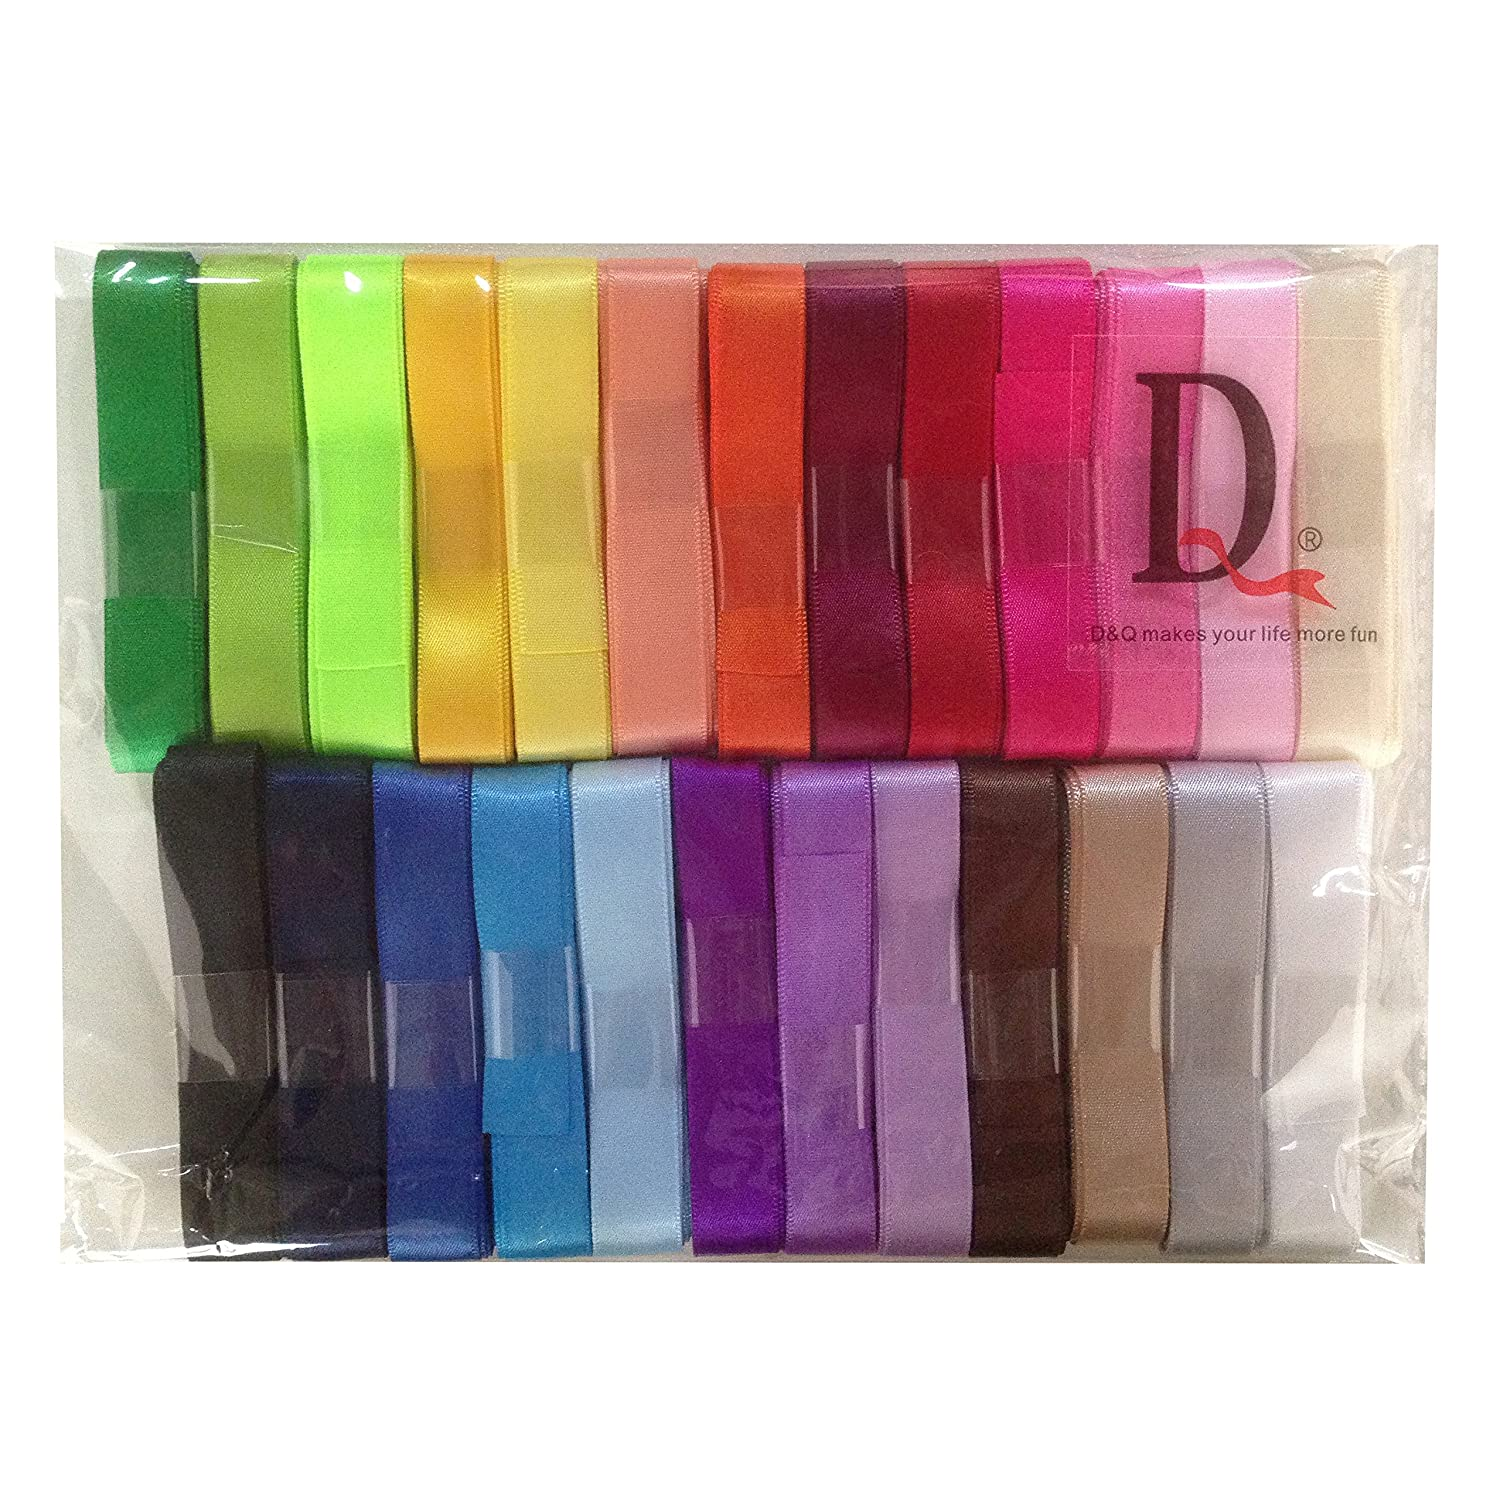 25x2yd DUOQU 7//8 Single Face Satin Ribbon 50 Yards 25 Colors Assorted